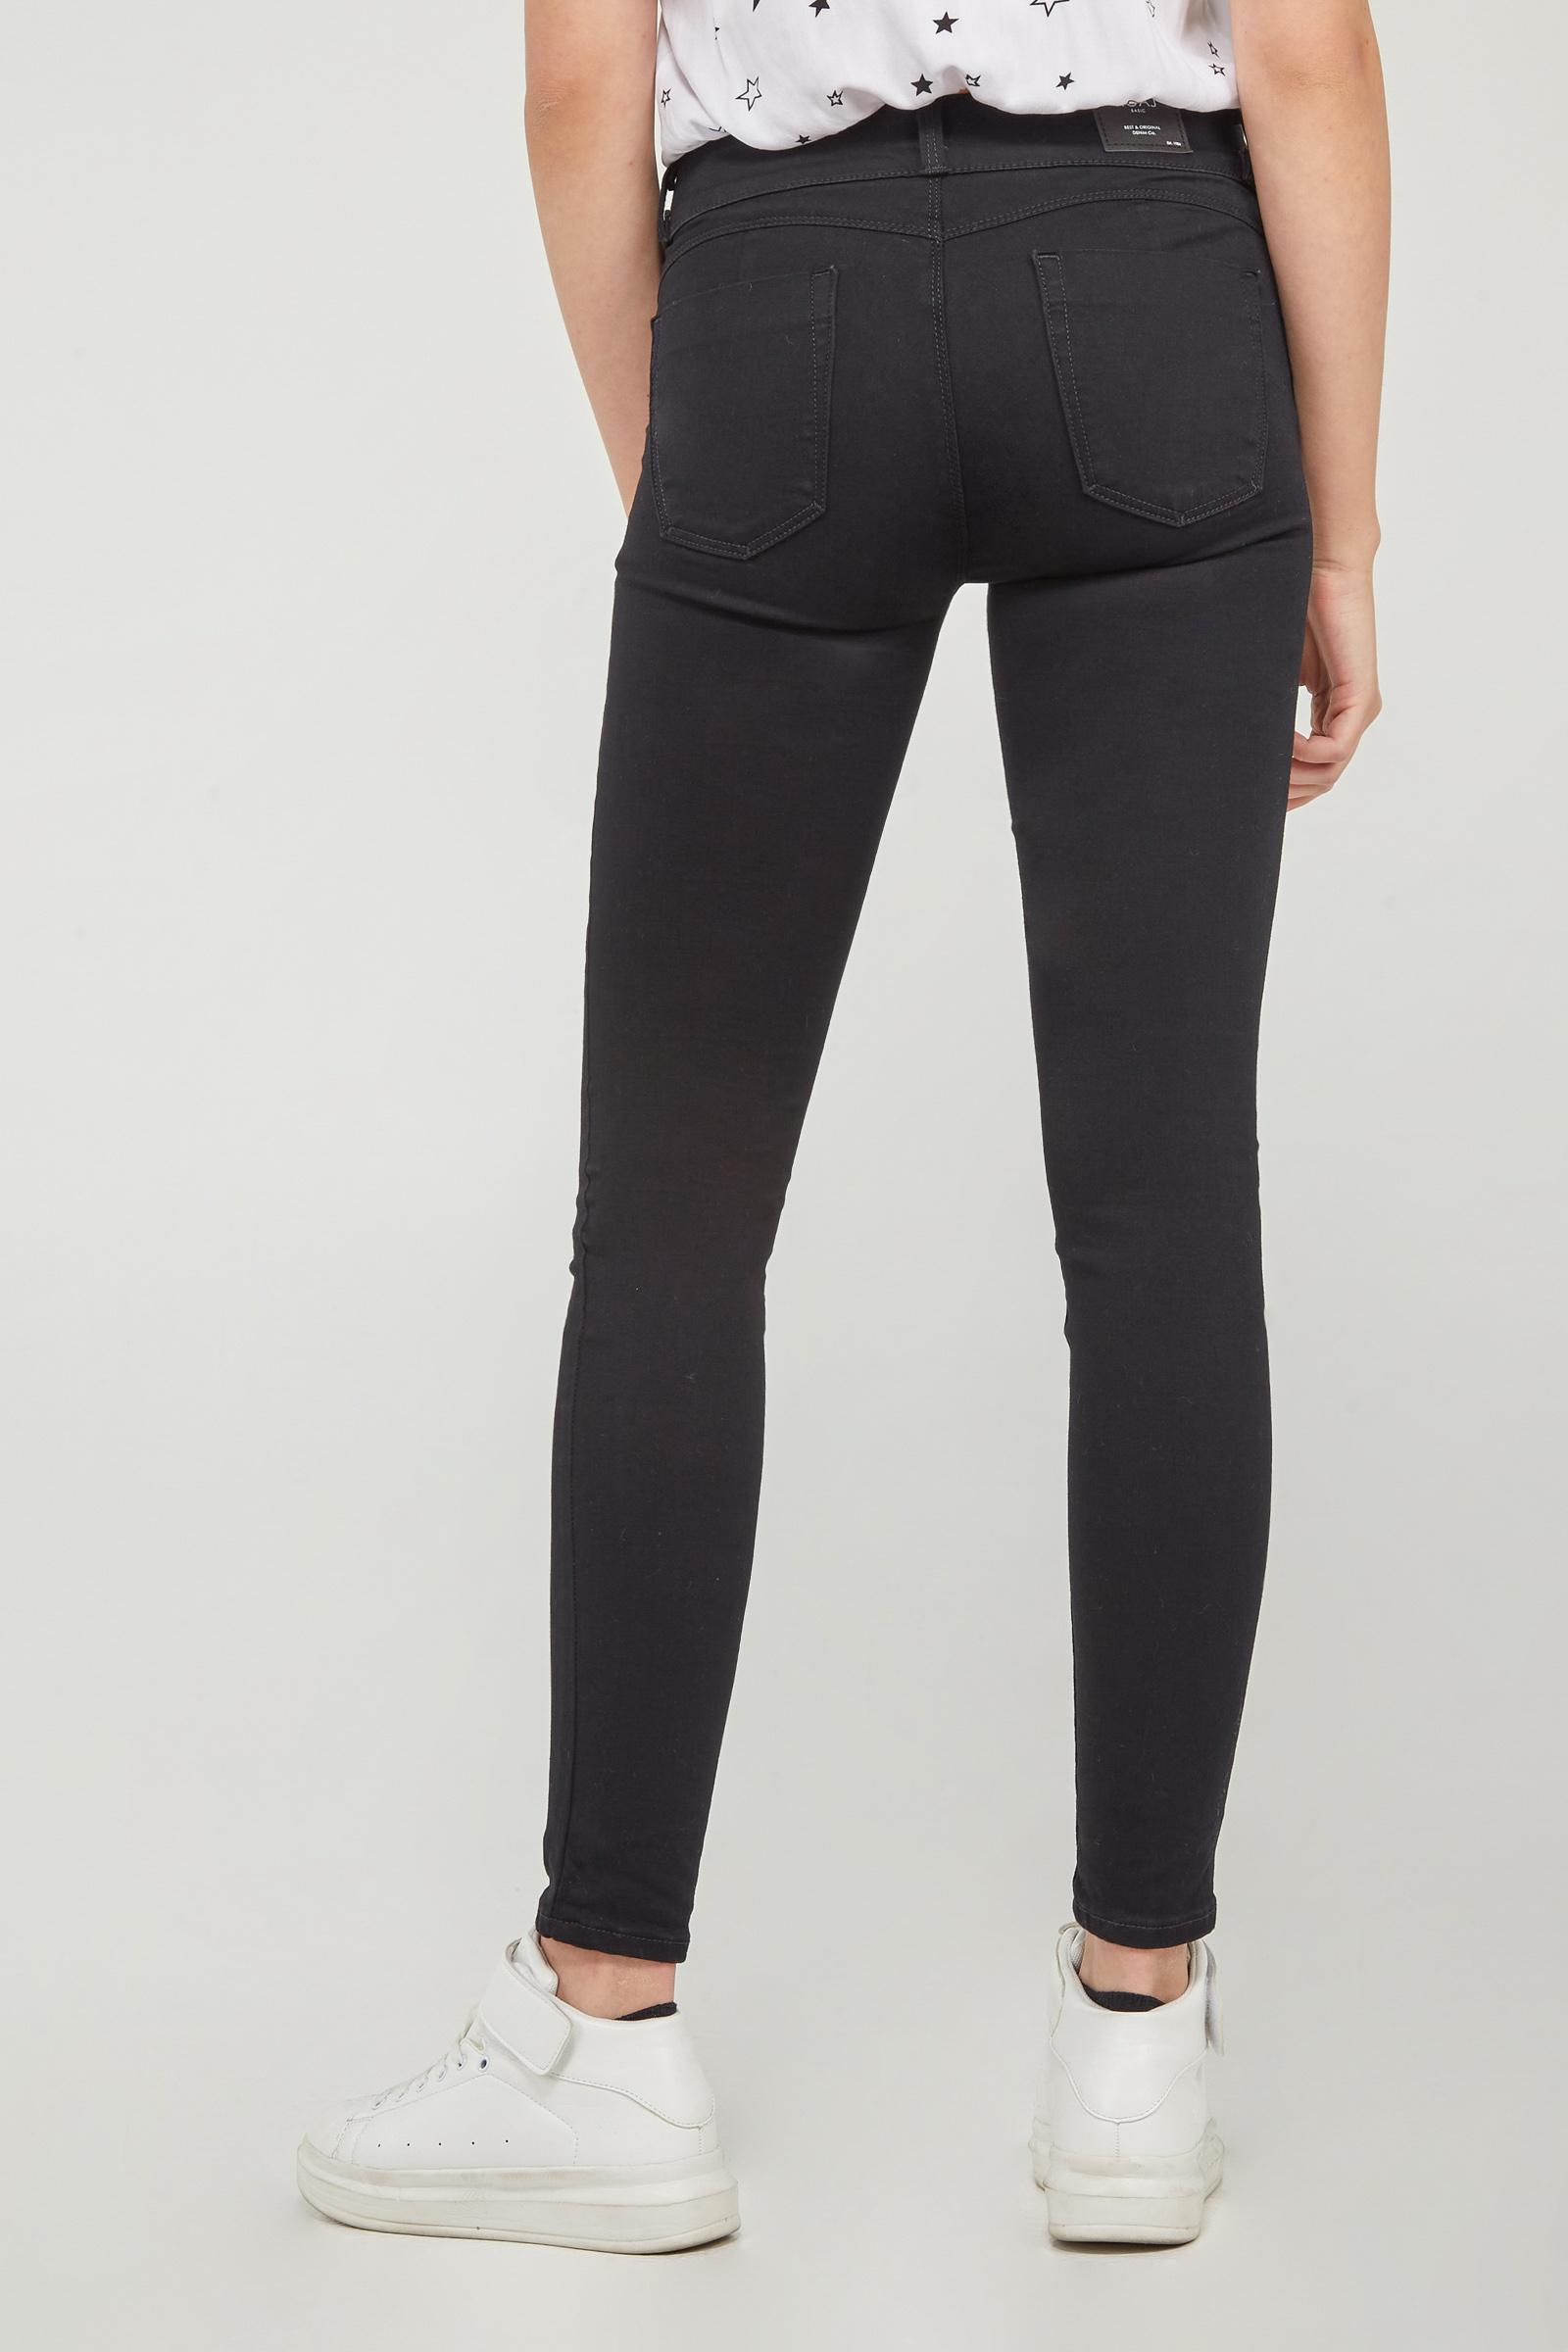 KOAJ-PANTALON KOAJ JEAN PUSH UP 18 1/20